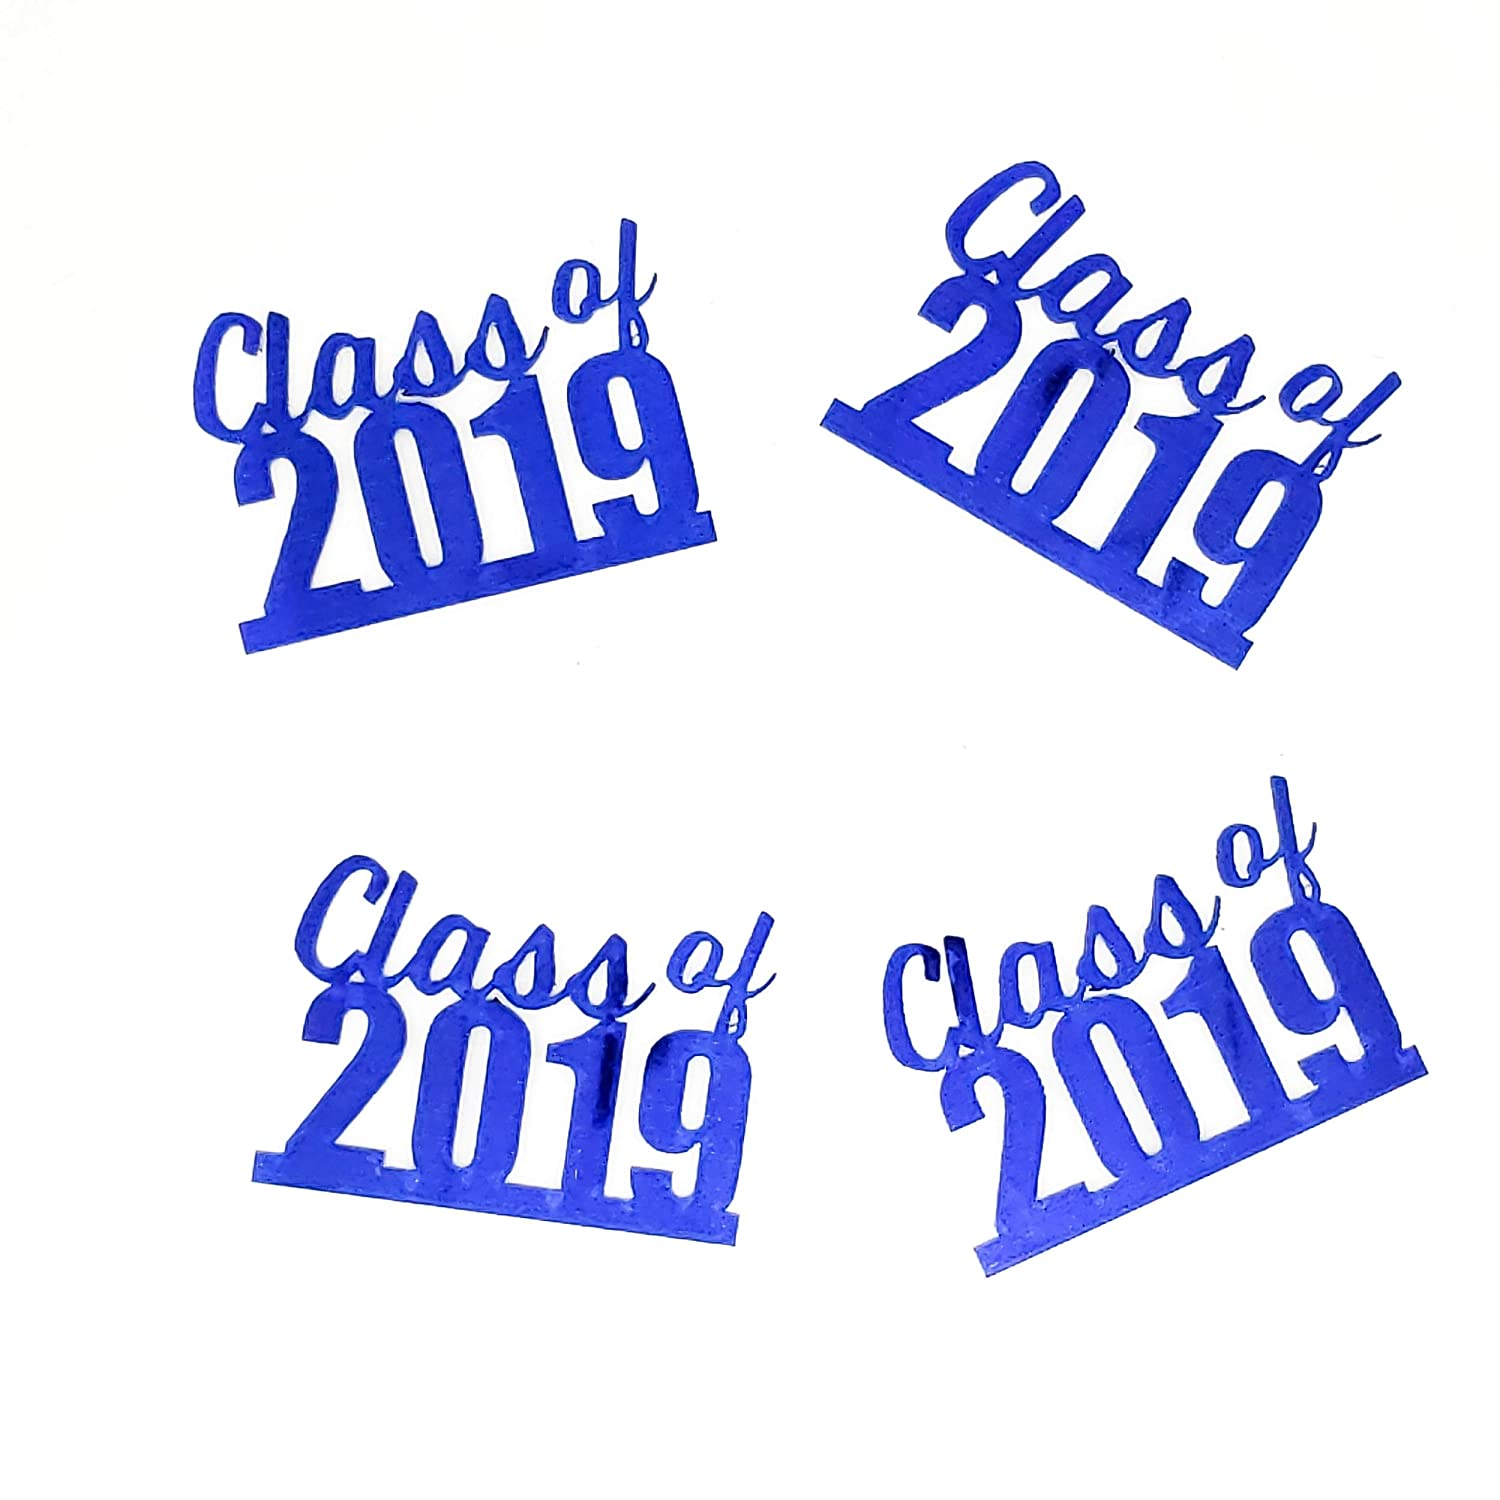 #6421 CLASS OF 2019 36 pcs Custom Confetti Metallic Colors Metallic Shape Also Available in Paper